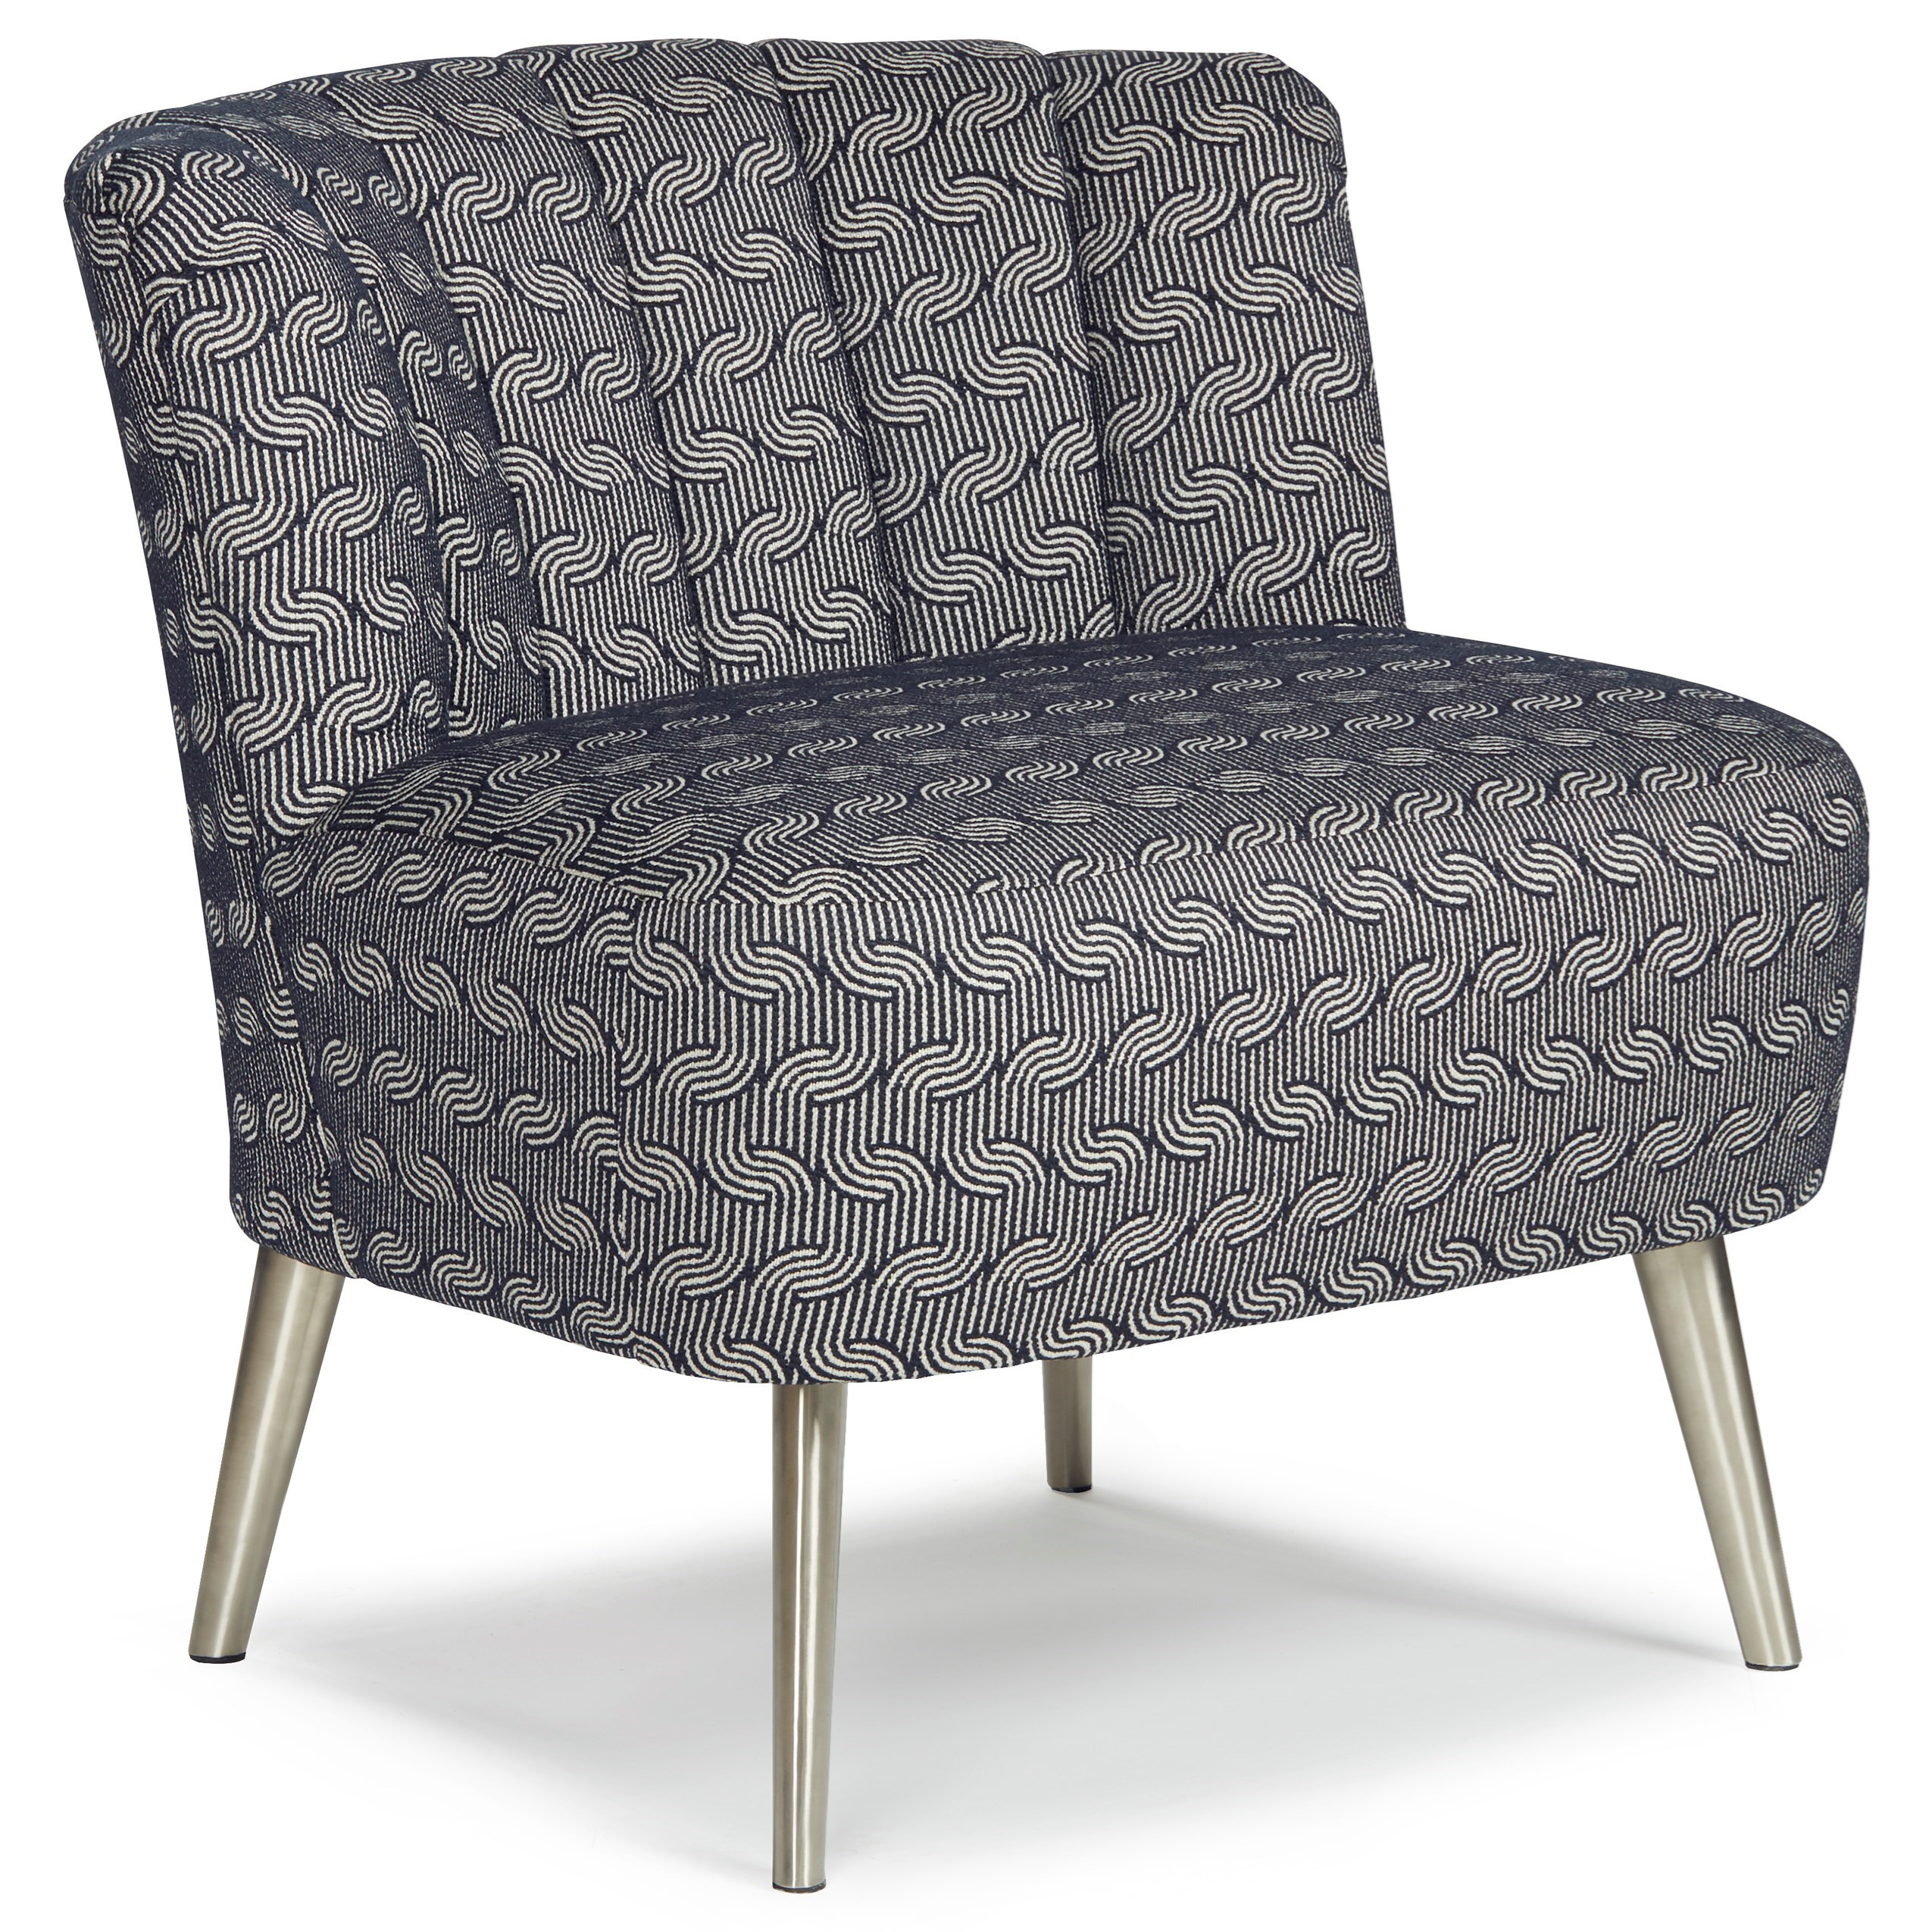 Best Xpress - Ameretta Accent Chair by Best Home Furnishings at Best Home Furnishings